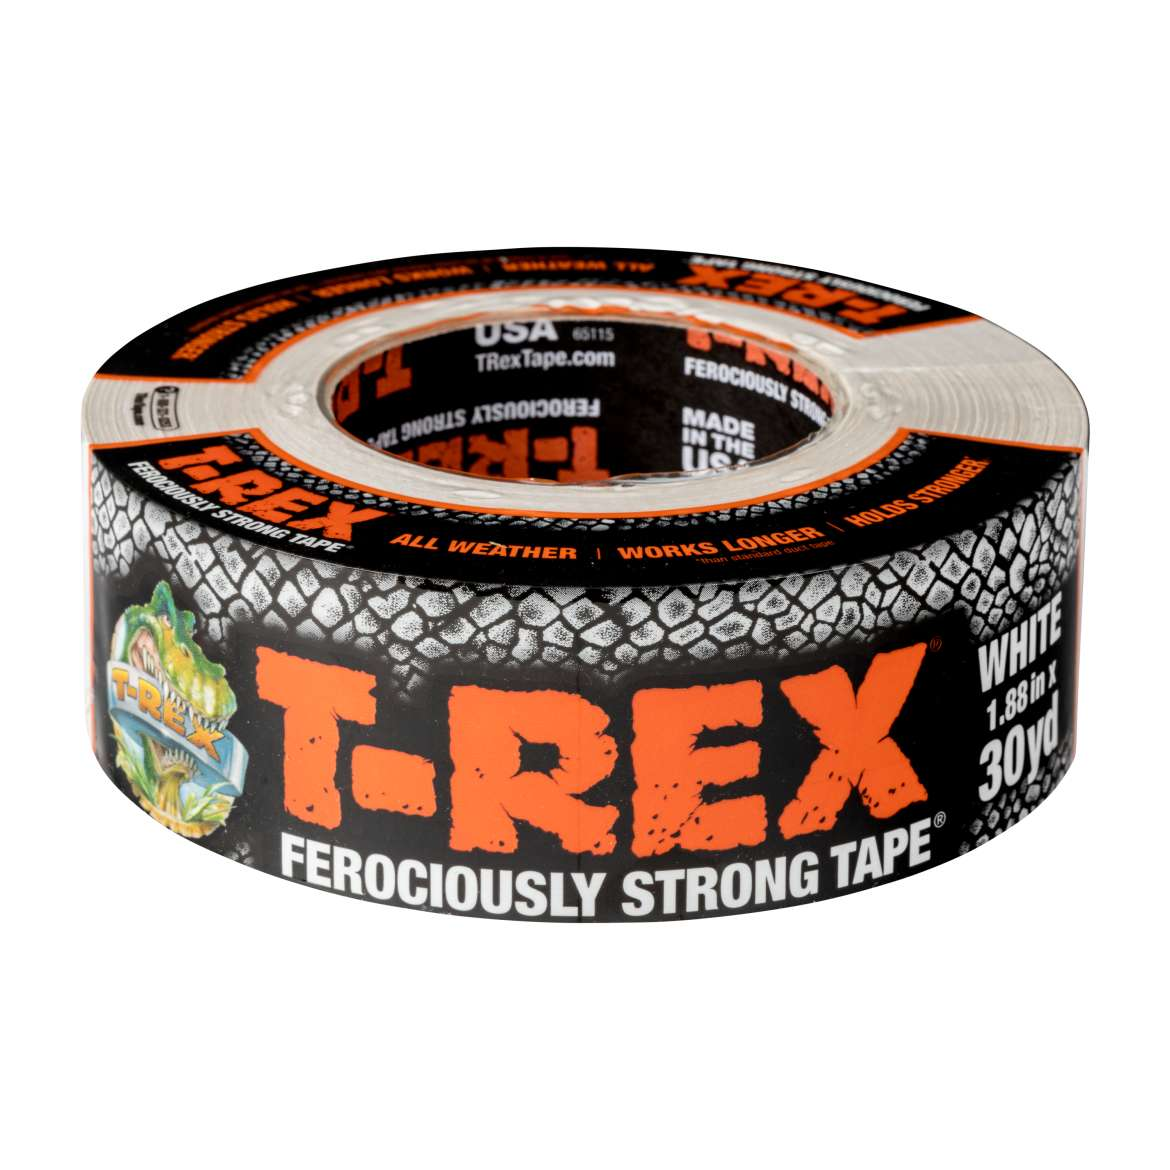 T-Rex® Ferociously Strong Tape - White, 1.88 in. x 30 yd.